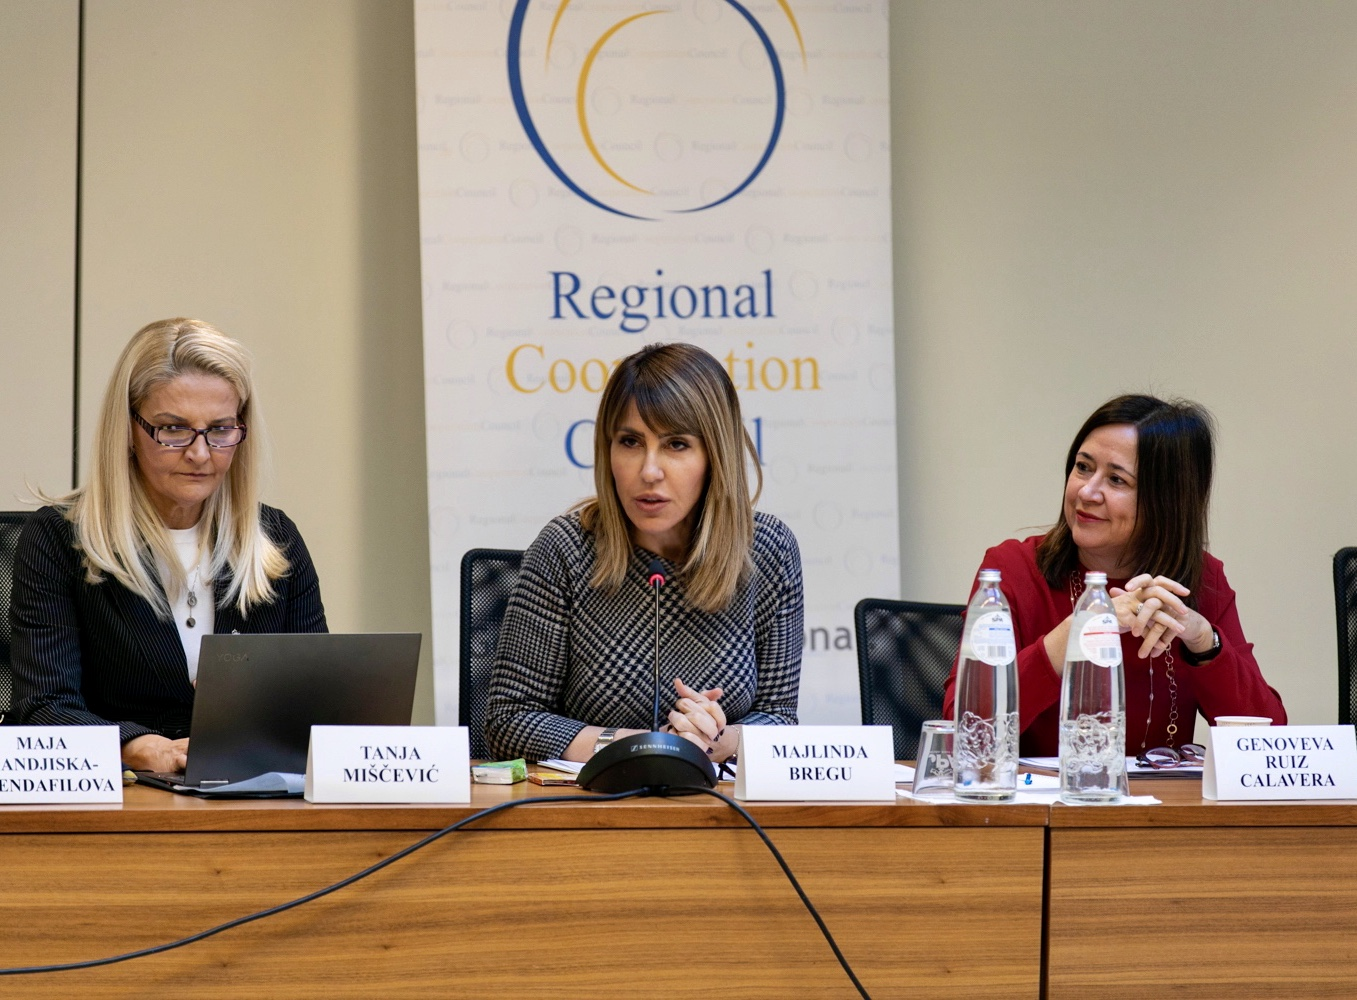 Majlinda Bregu, RCC Secretary General addressed the meeting of Coordinators in charge of MAP REA implementation in Brussels, 2 December 2019 (Photo: RCC/Laure Geerts)